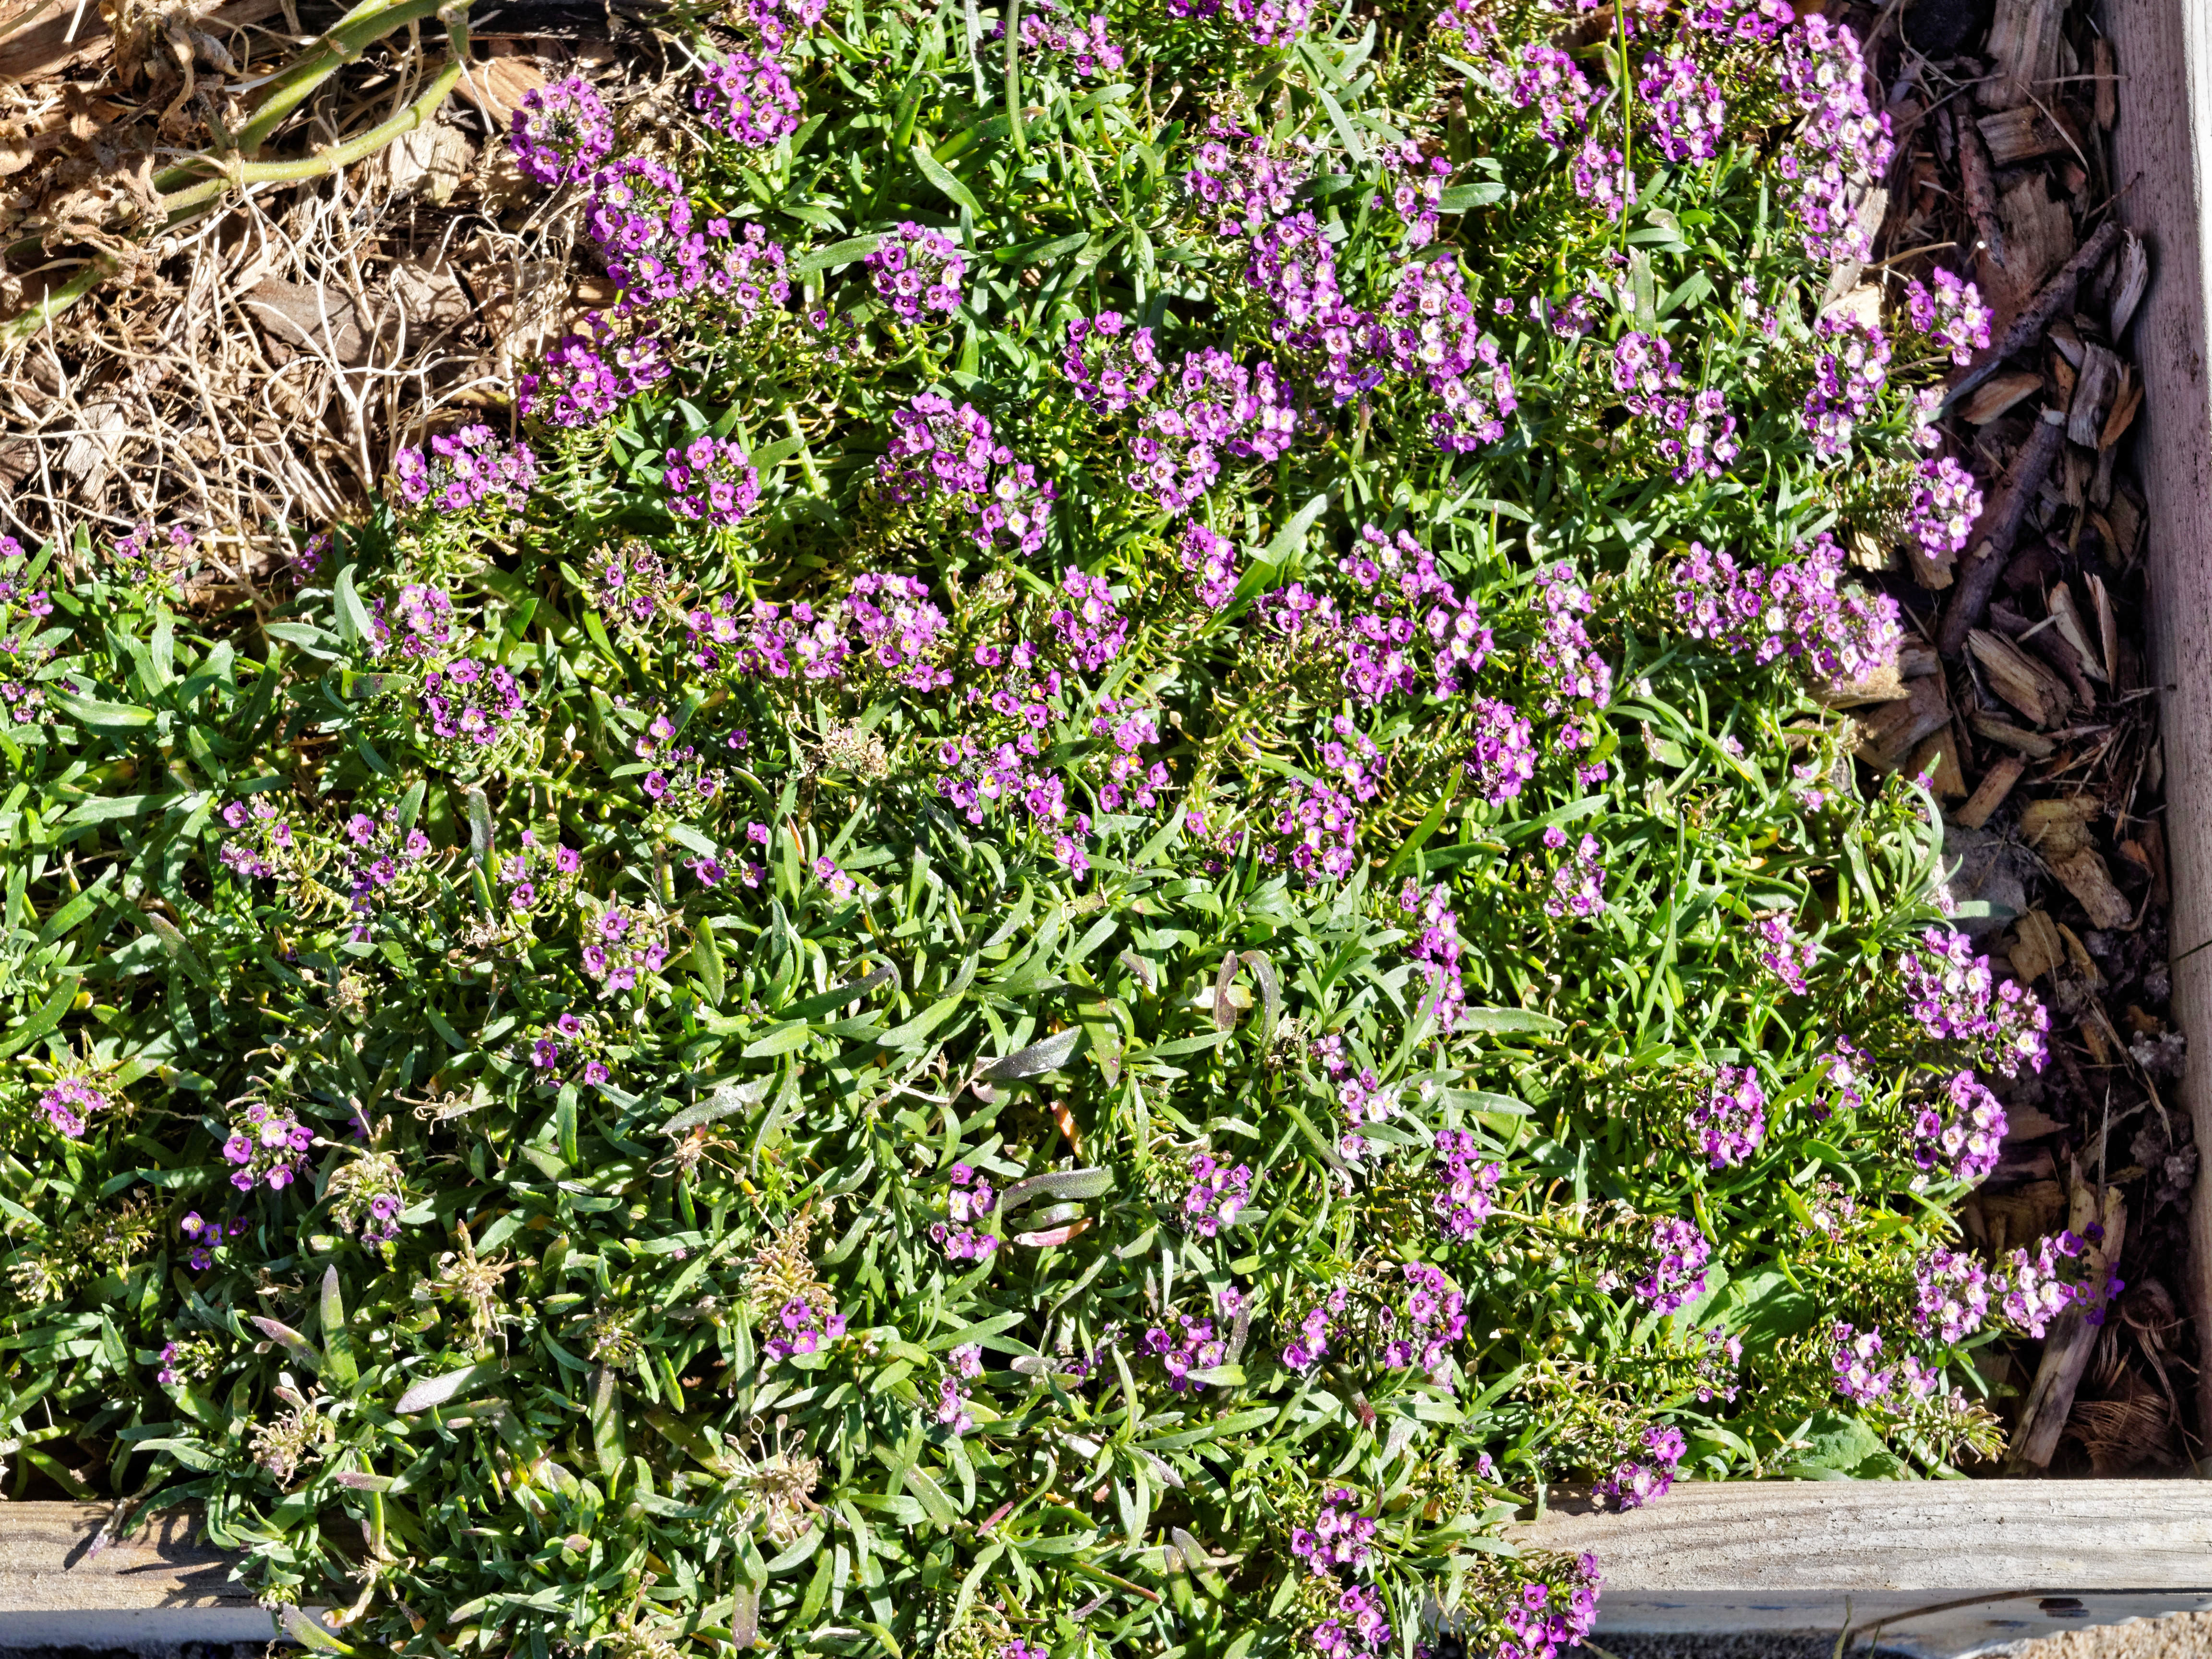 This should be Alyssum.jpeg.  Is it missing?